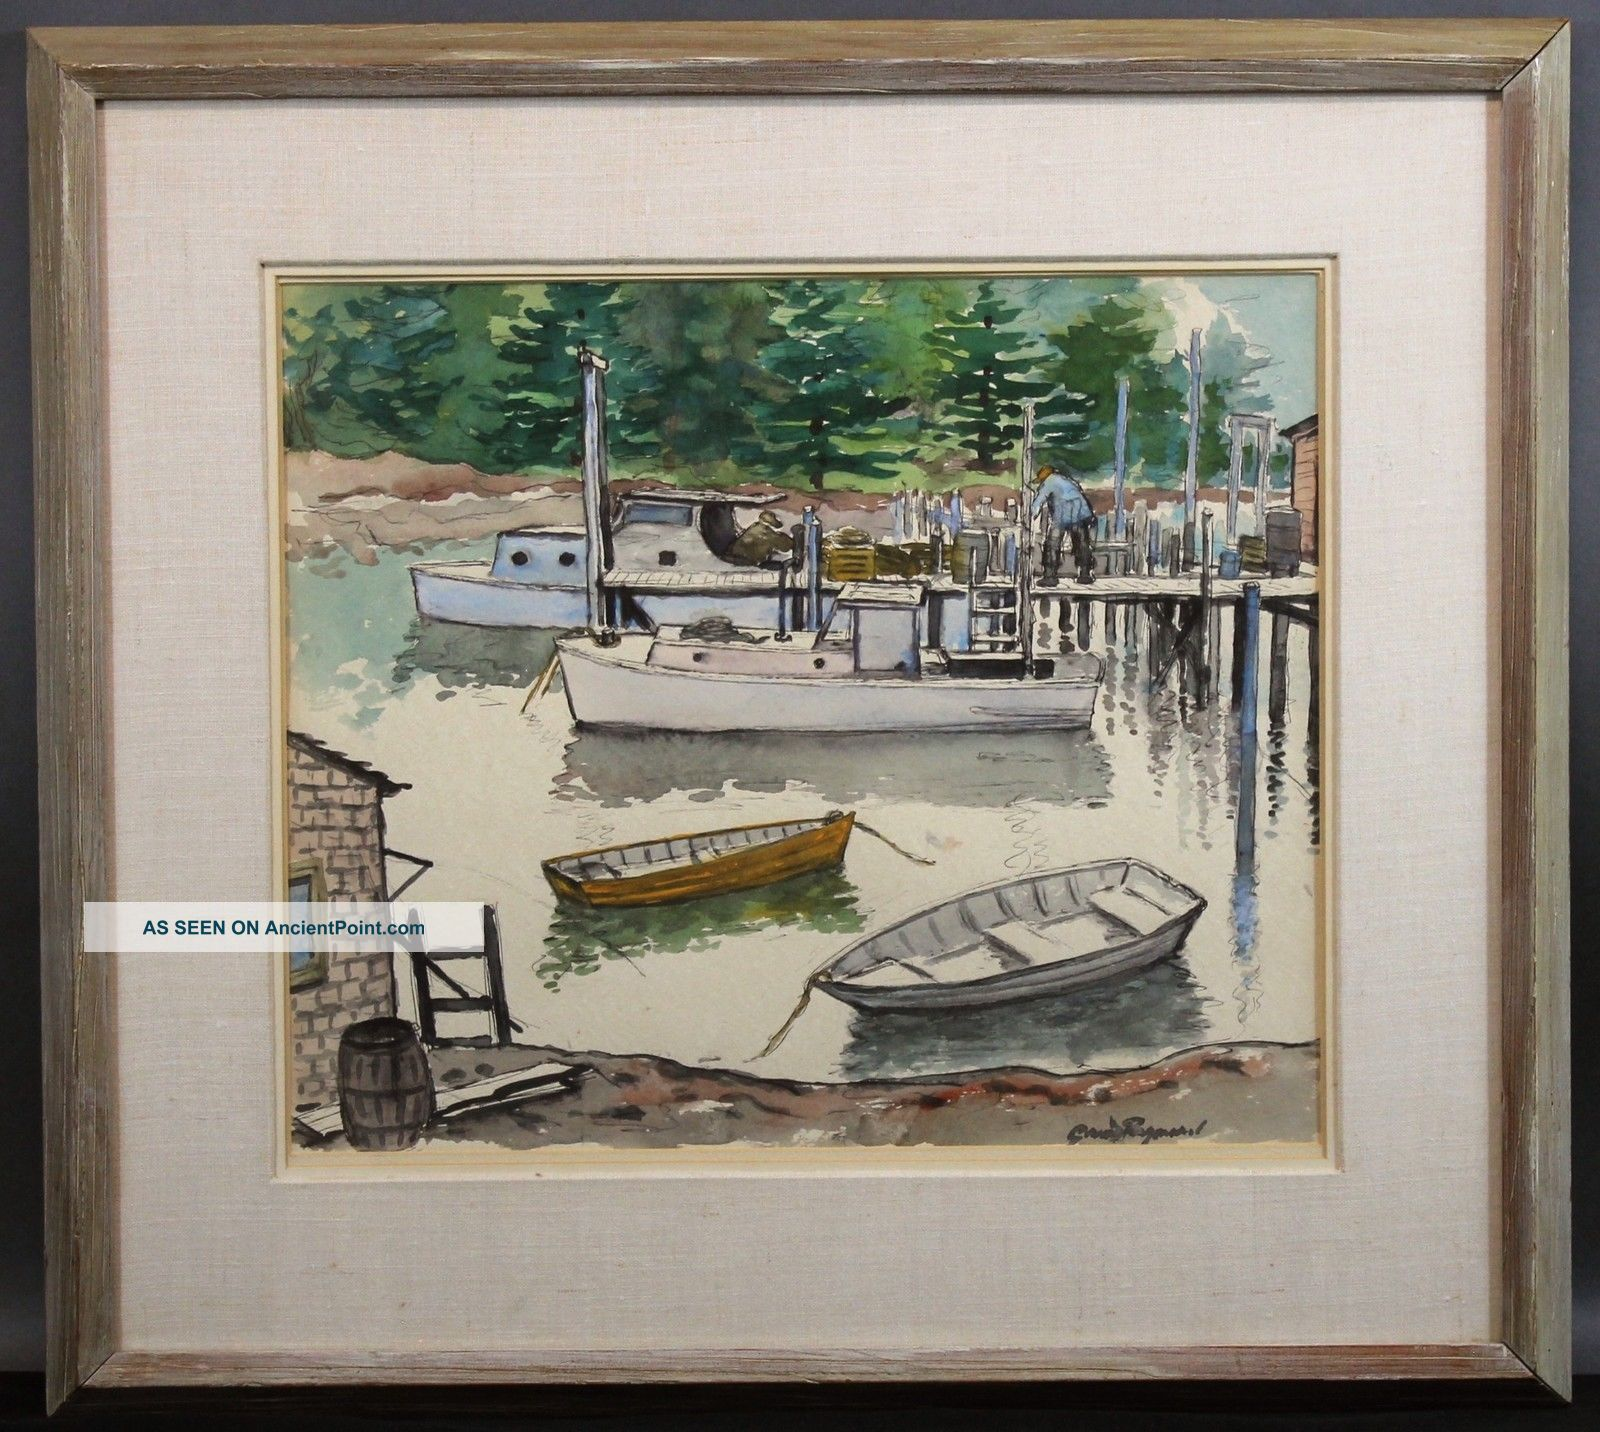 Antique Grant Tyson Reynard Jersey Boat Dock Watercolor Painting Other Maritime Antiques photo